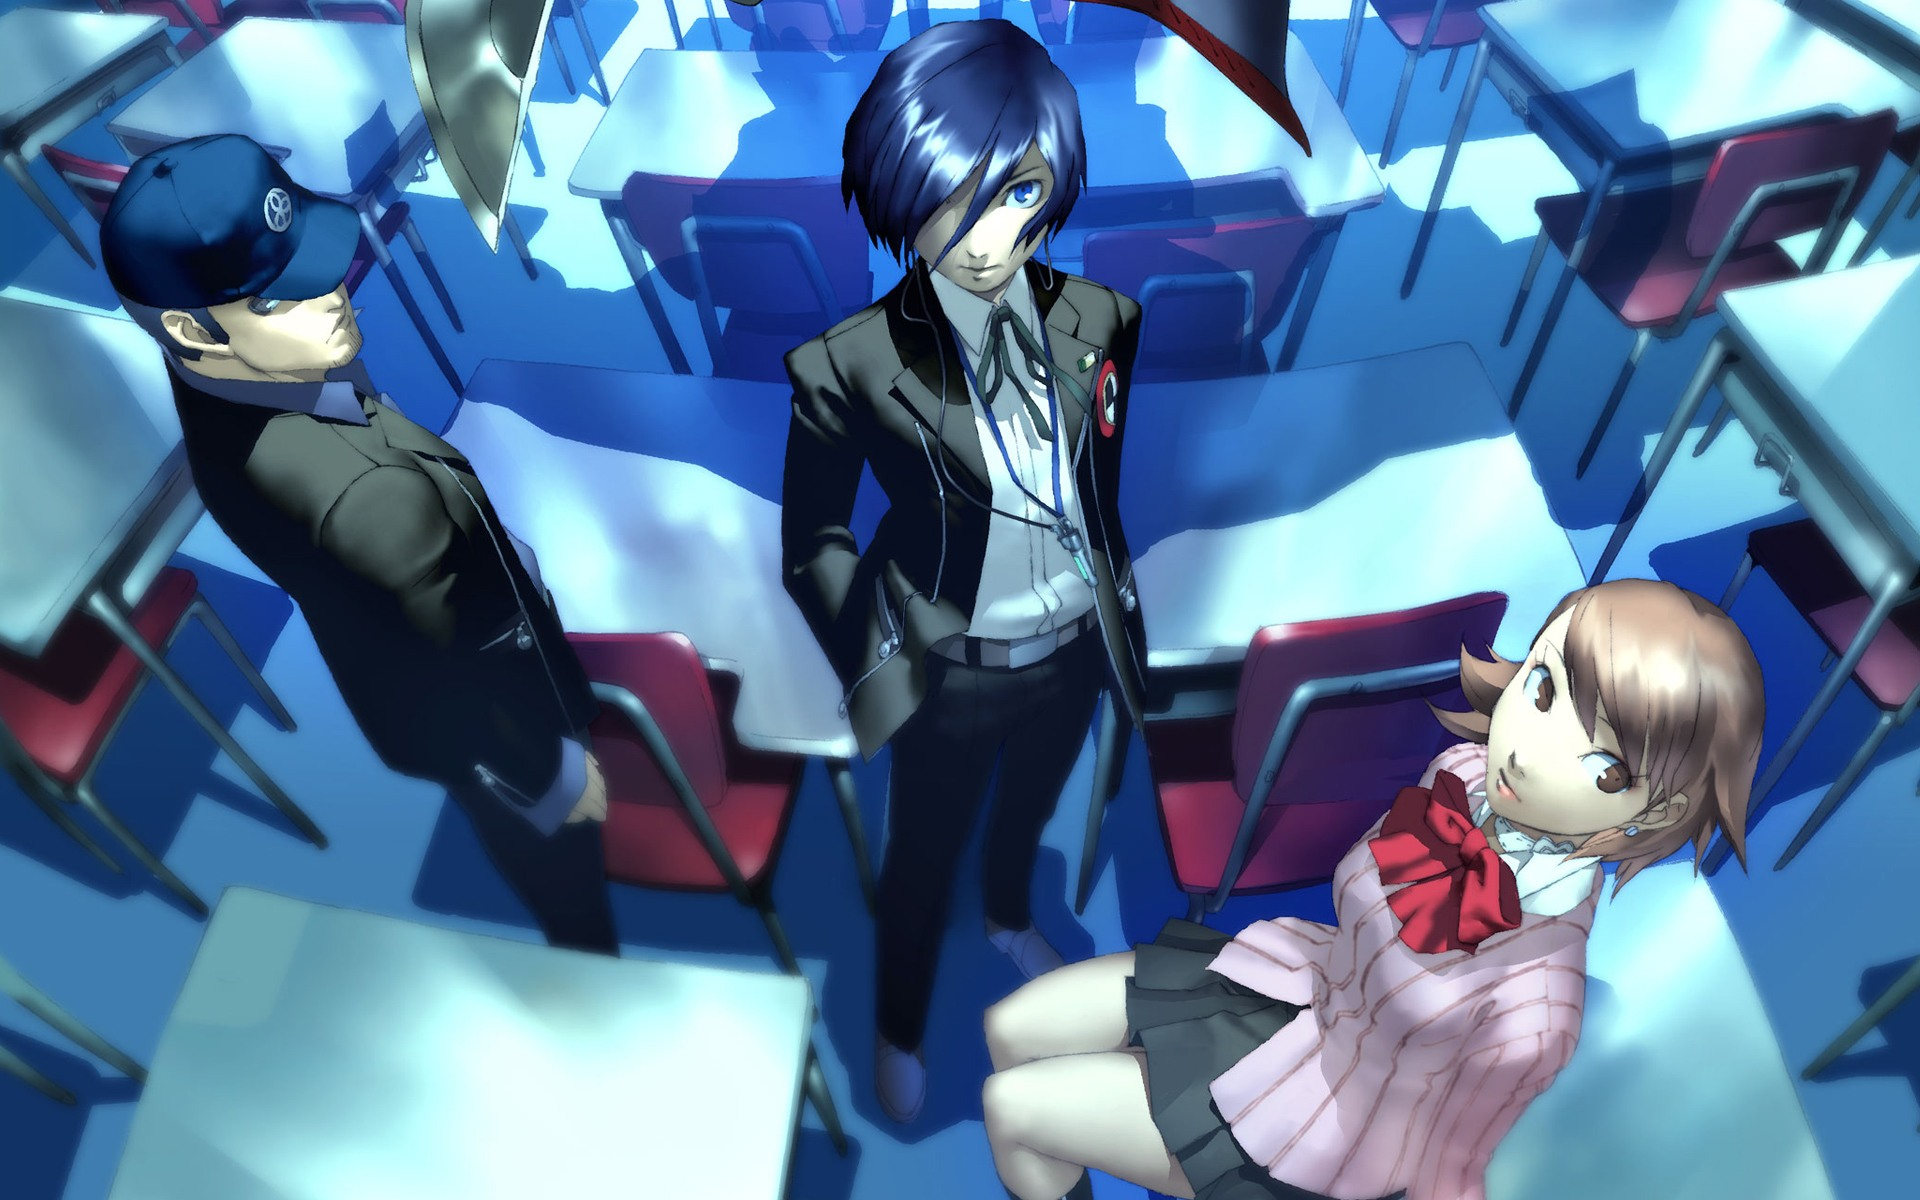 Persona 3 Backgrounds, Compatible - PC, Mobile, Gadgets| 1920x1200 px